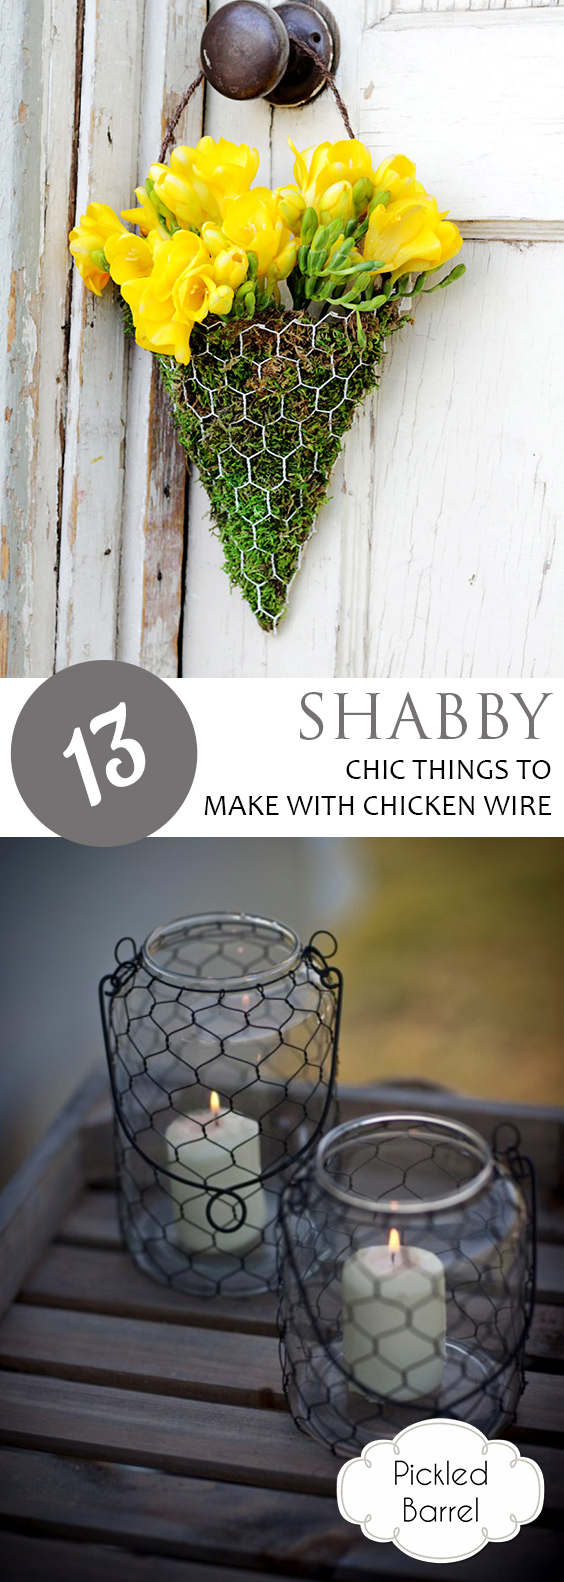 13 Shabby Chic Things to Make With Chicken Wire| DIY Home, DIY Home Decor, Home Decor Hacks, Chicken Wire DIYs, DIY Home Decor, Home Decor Projects, Crafts, Crafts for the Home #Crafts #Home #HomeDecor